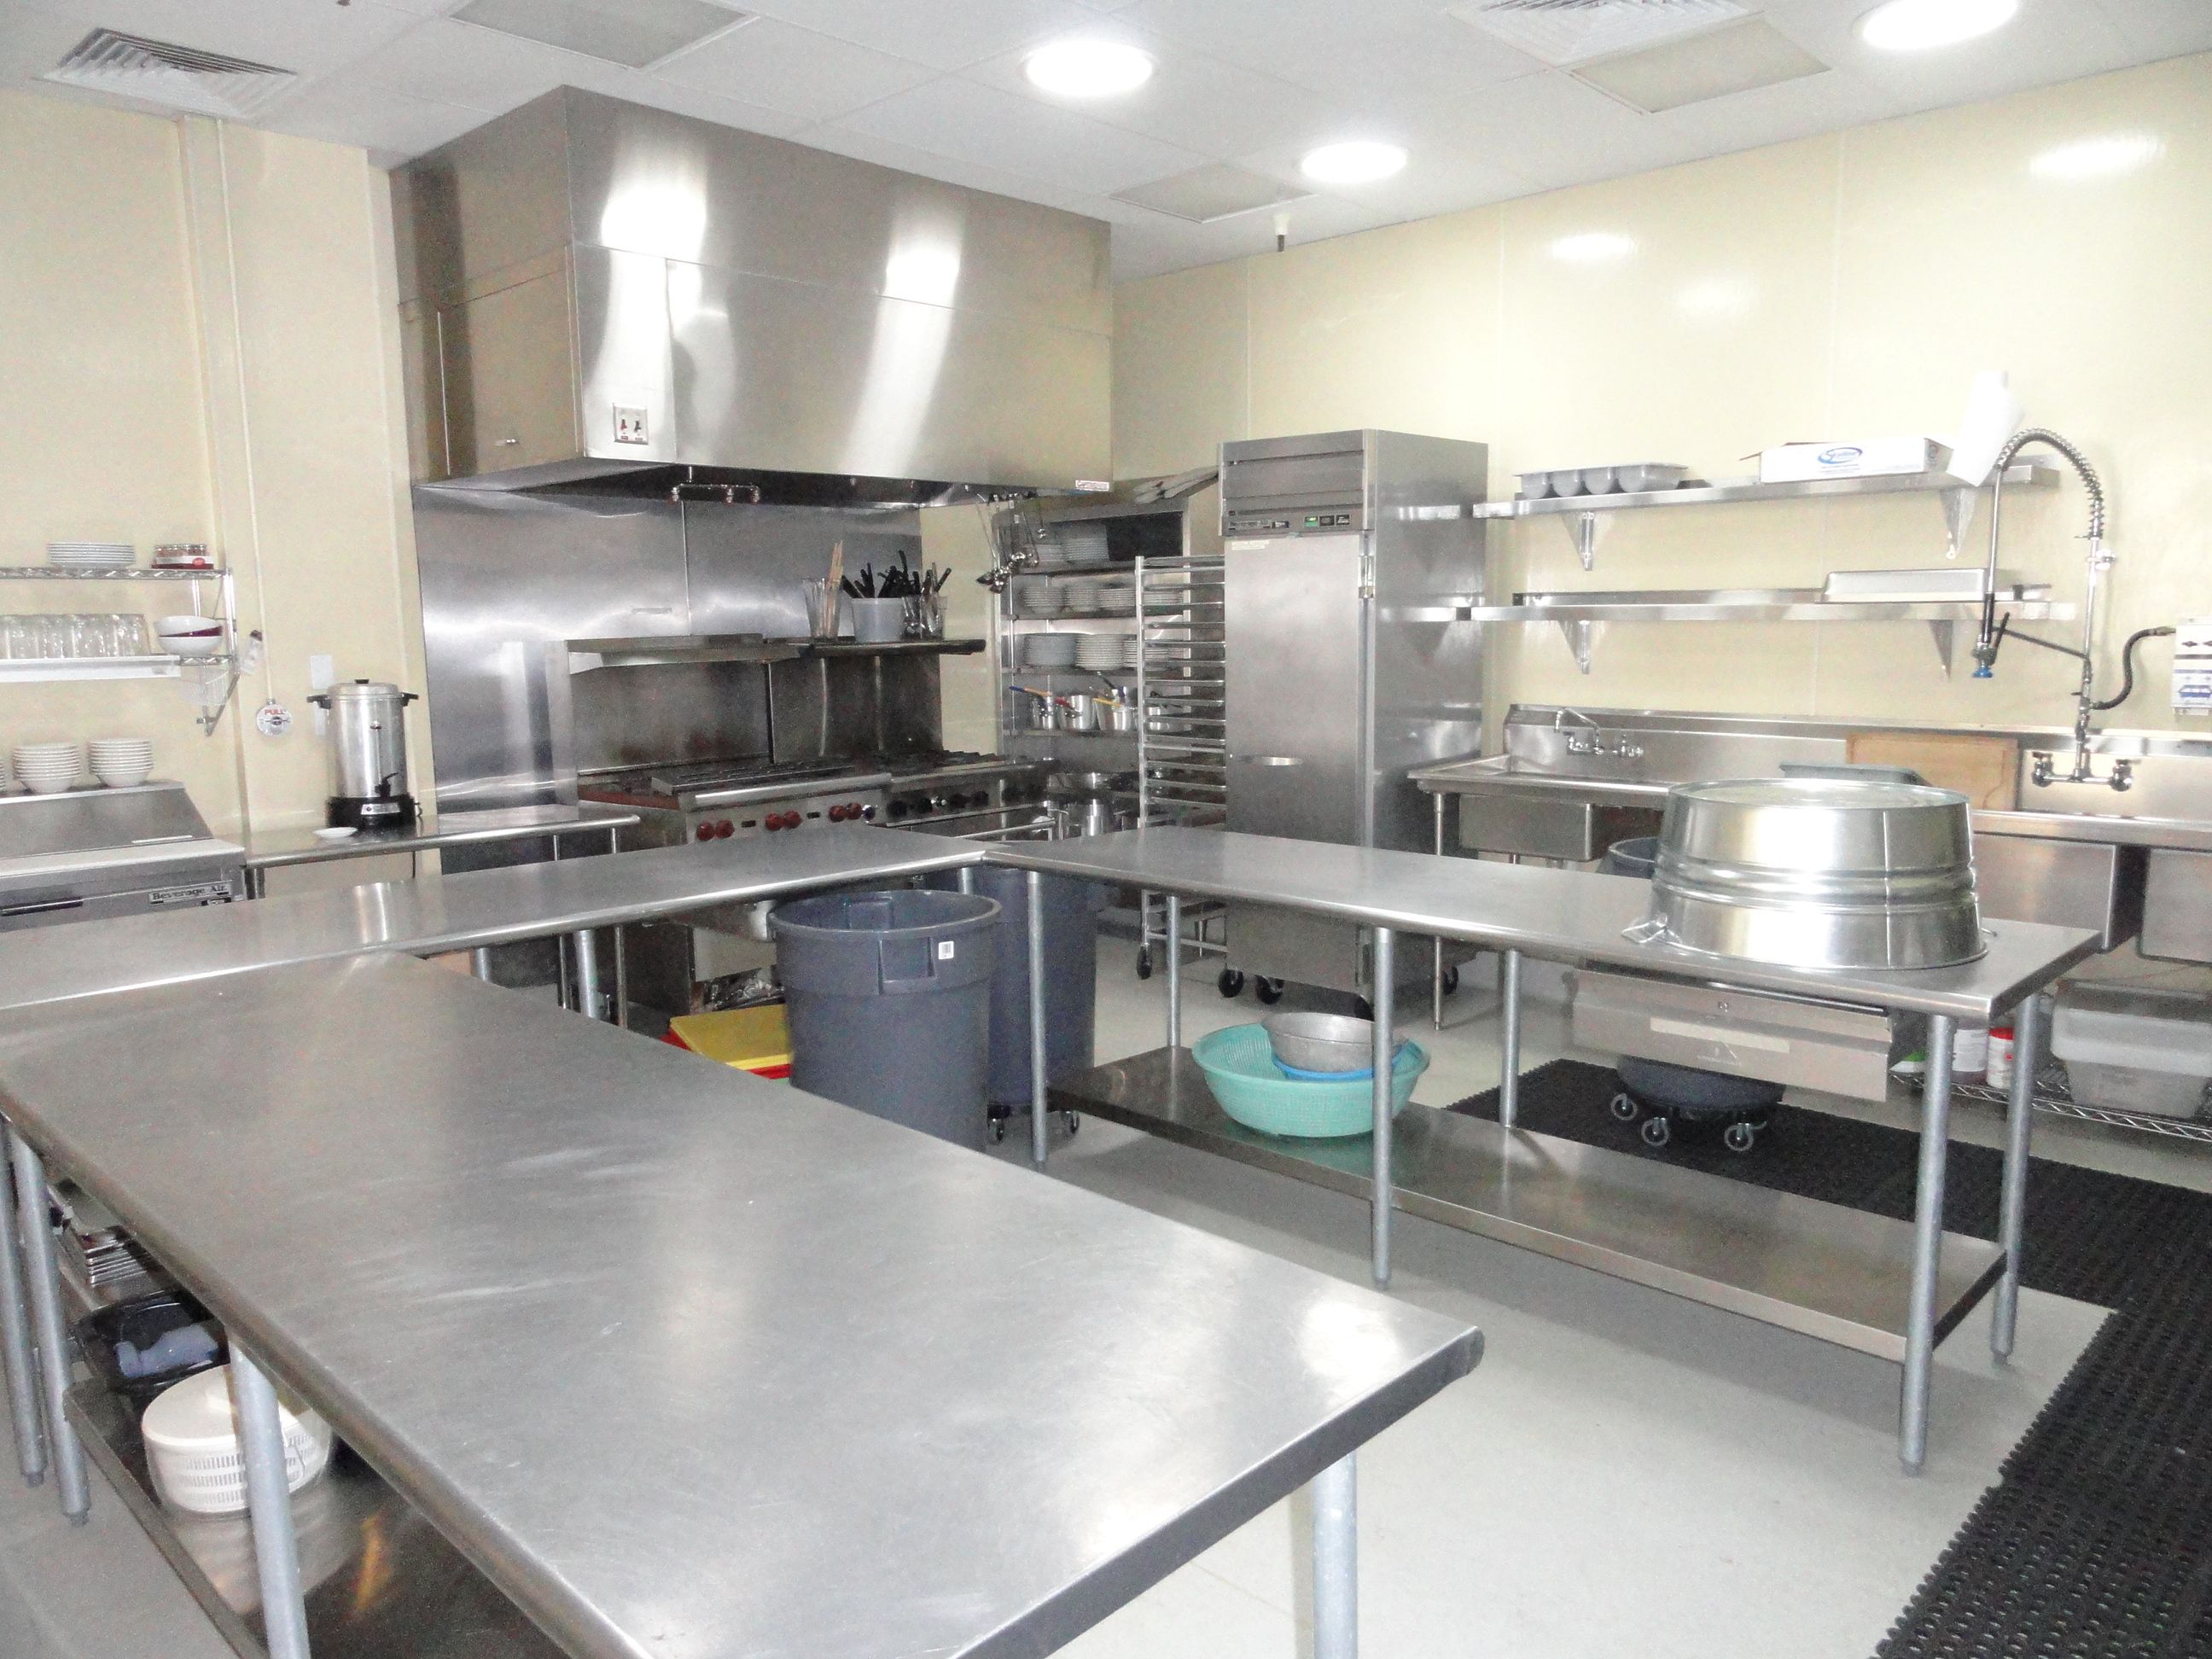 12 excellent small commercial kitchen equipment digital for Small commercial kitchen design ideas